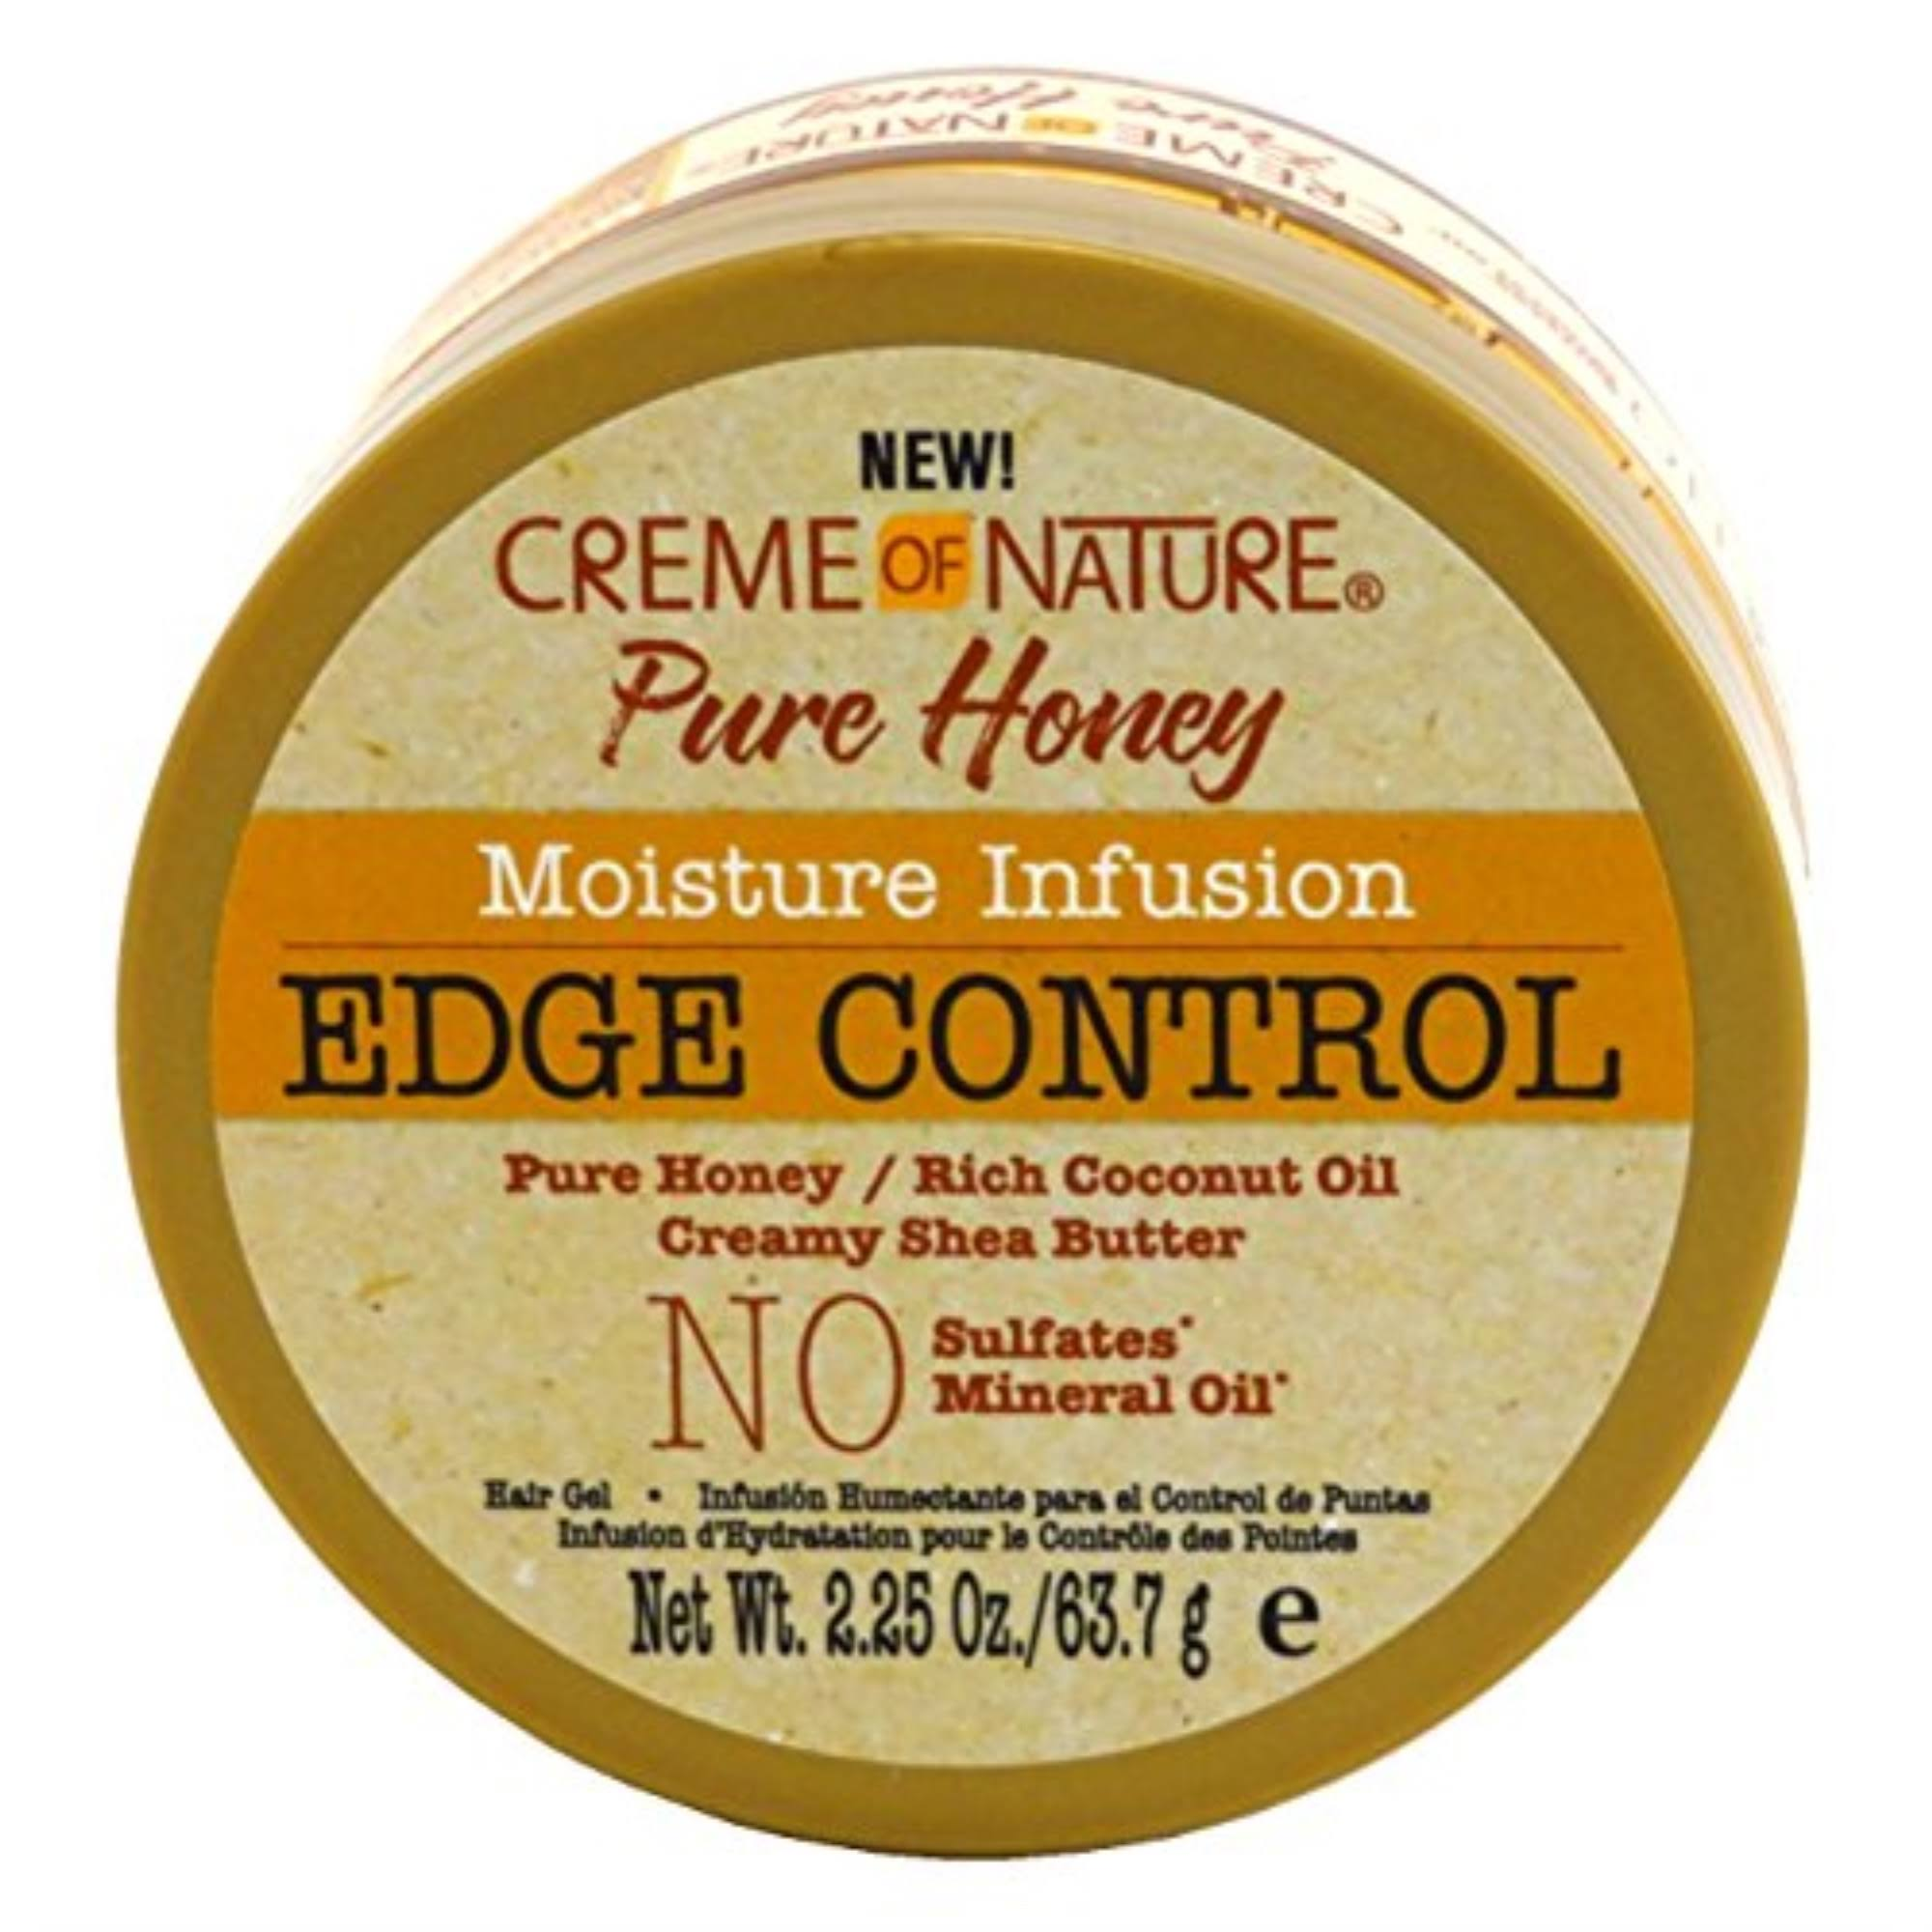 Cream of Nature Pure Honey Moisture Infusion Edge Control - 63.7g